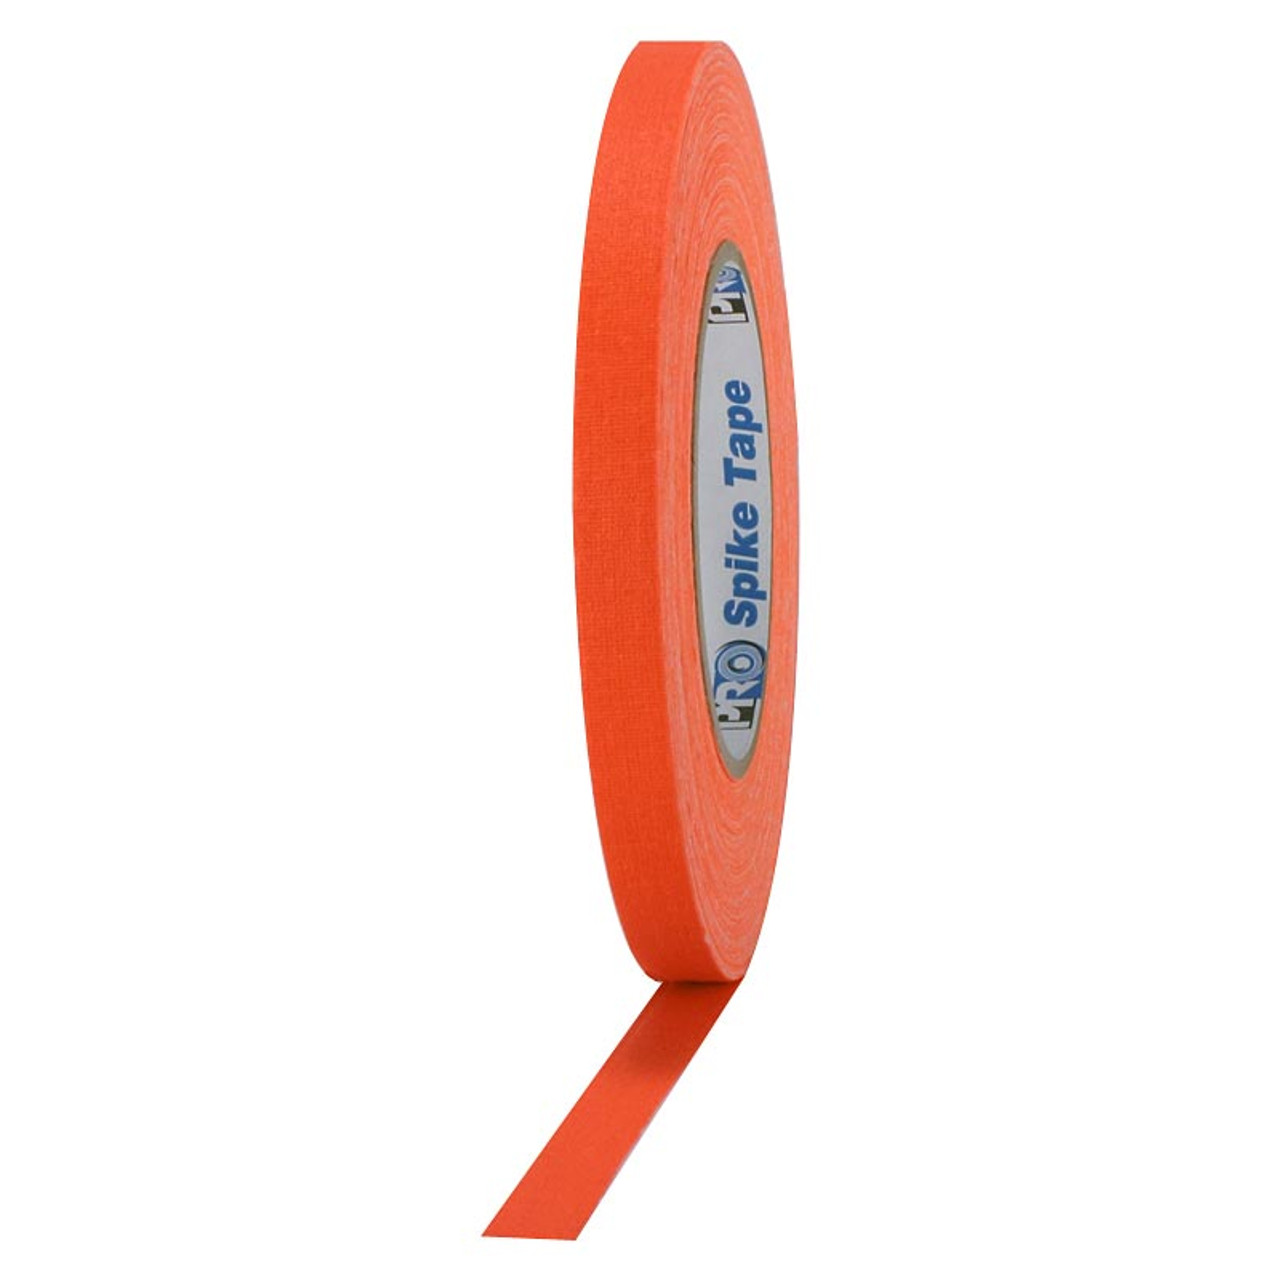 "Spike Tape - FL Orange 1/2"" x 50 Yds"